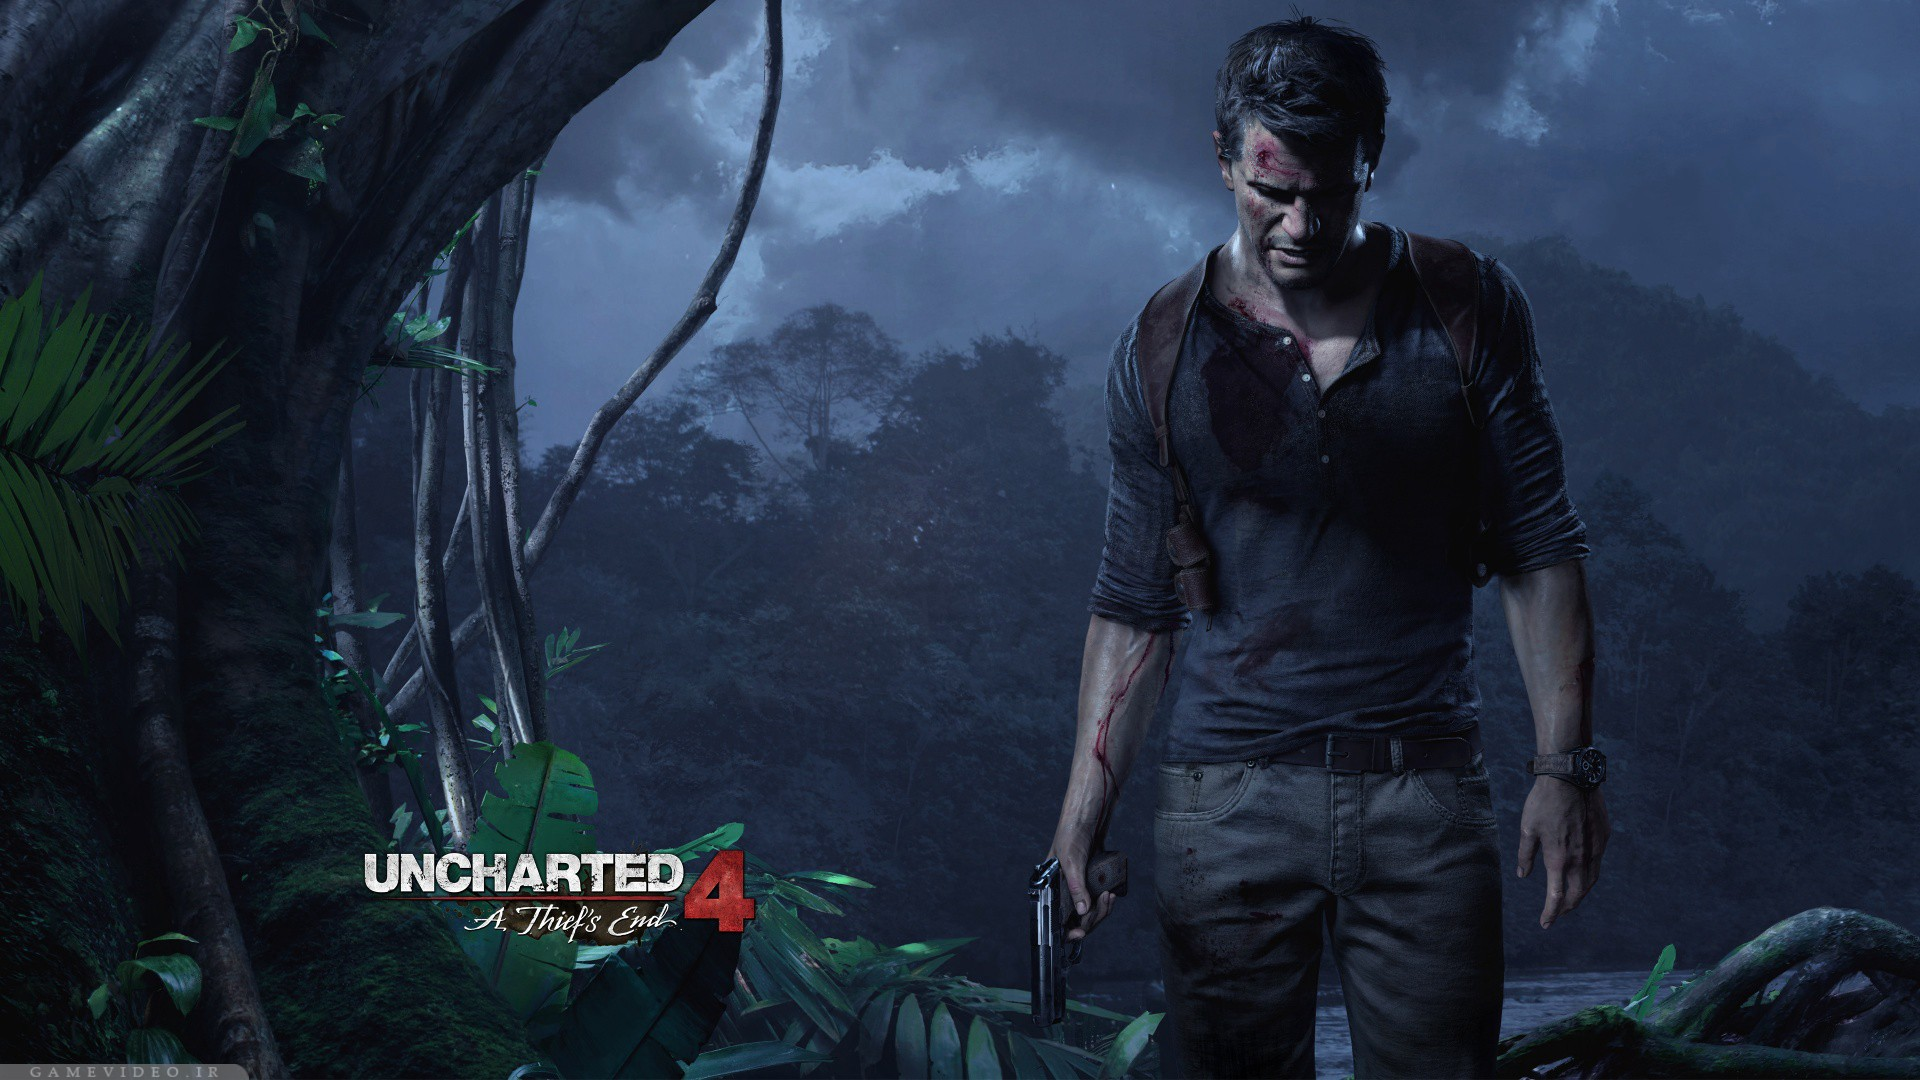 4138-uncharted_4_a_thiefs_end_game-1920x1080